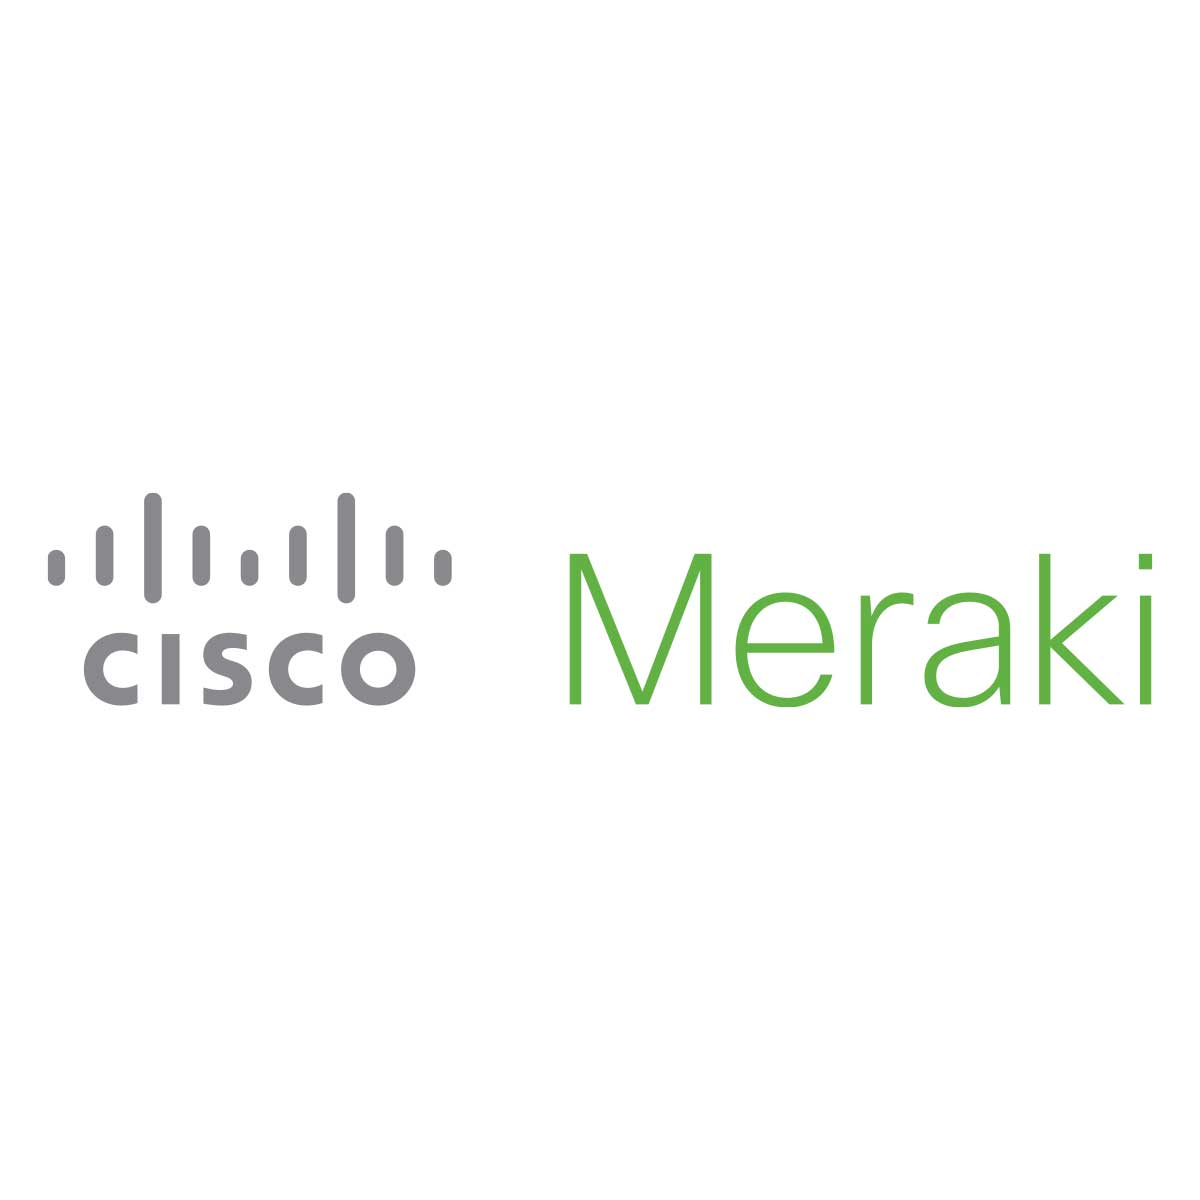 Cisco Meraki - Cloud Managed Networks that Simply Work